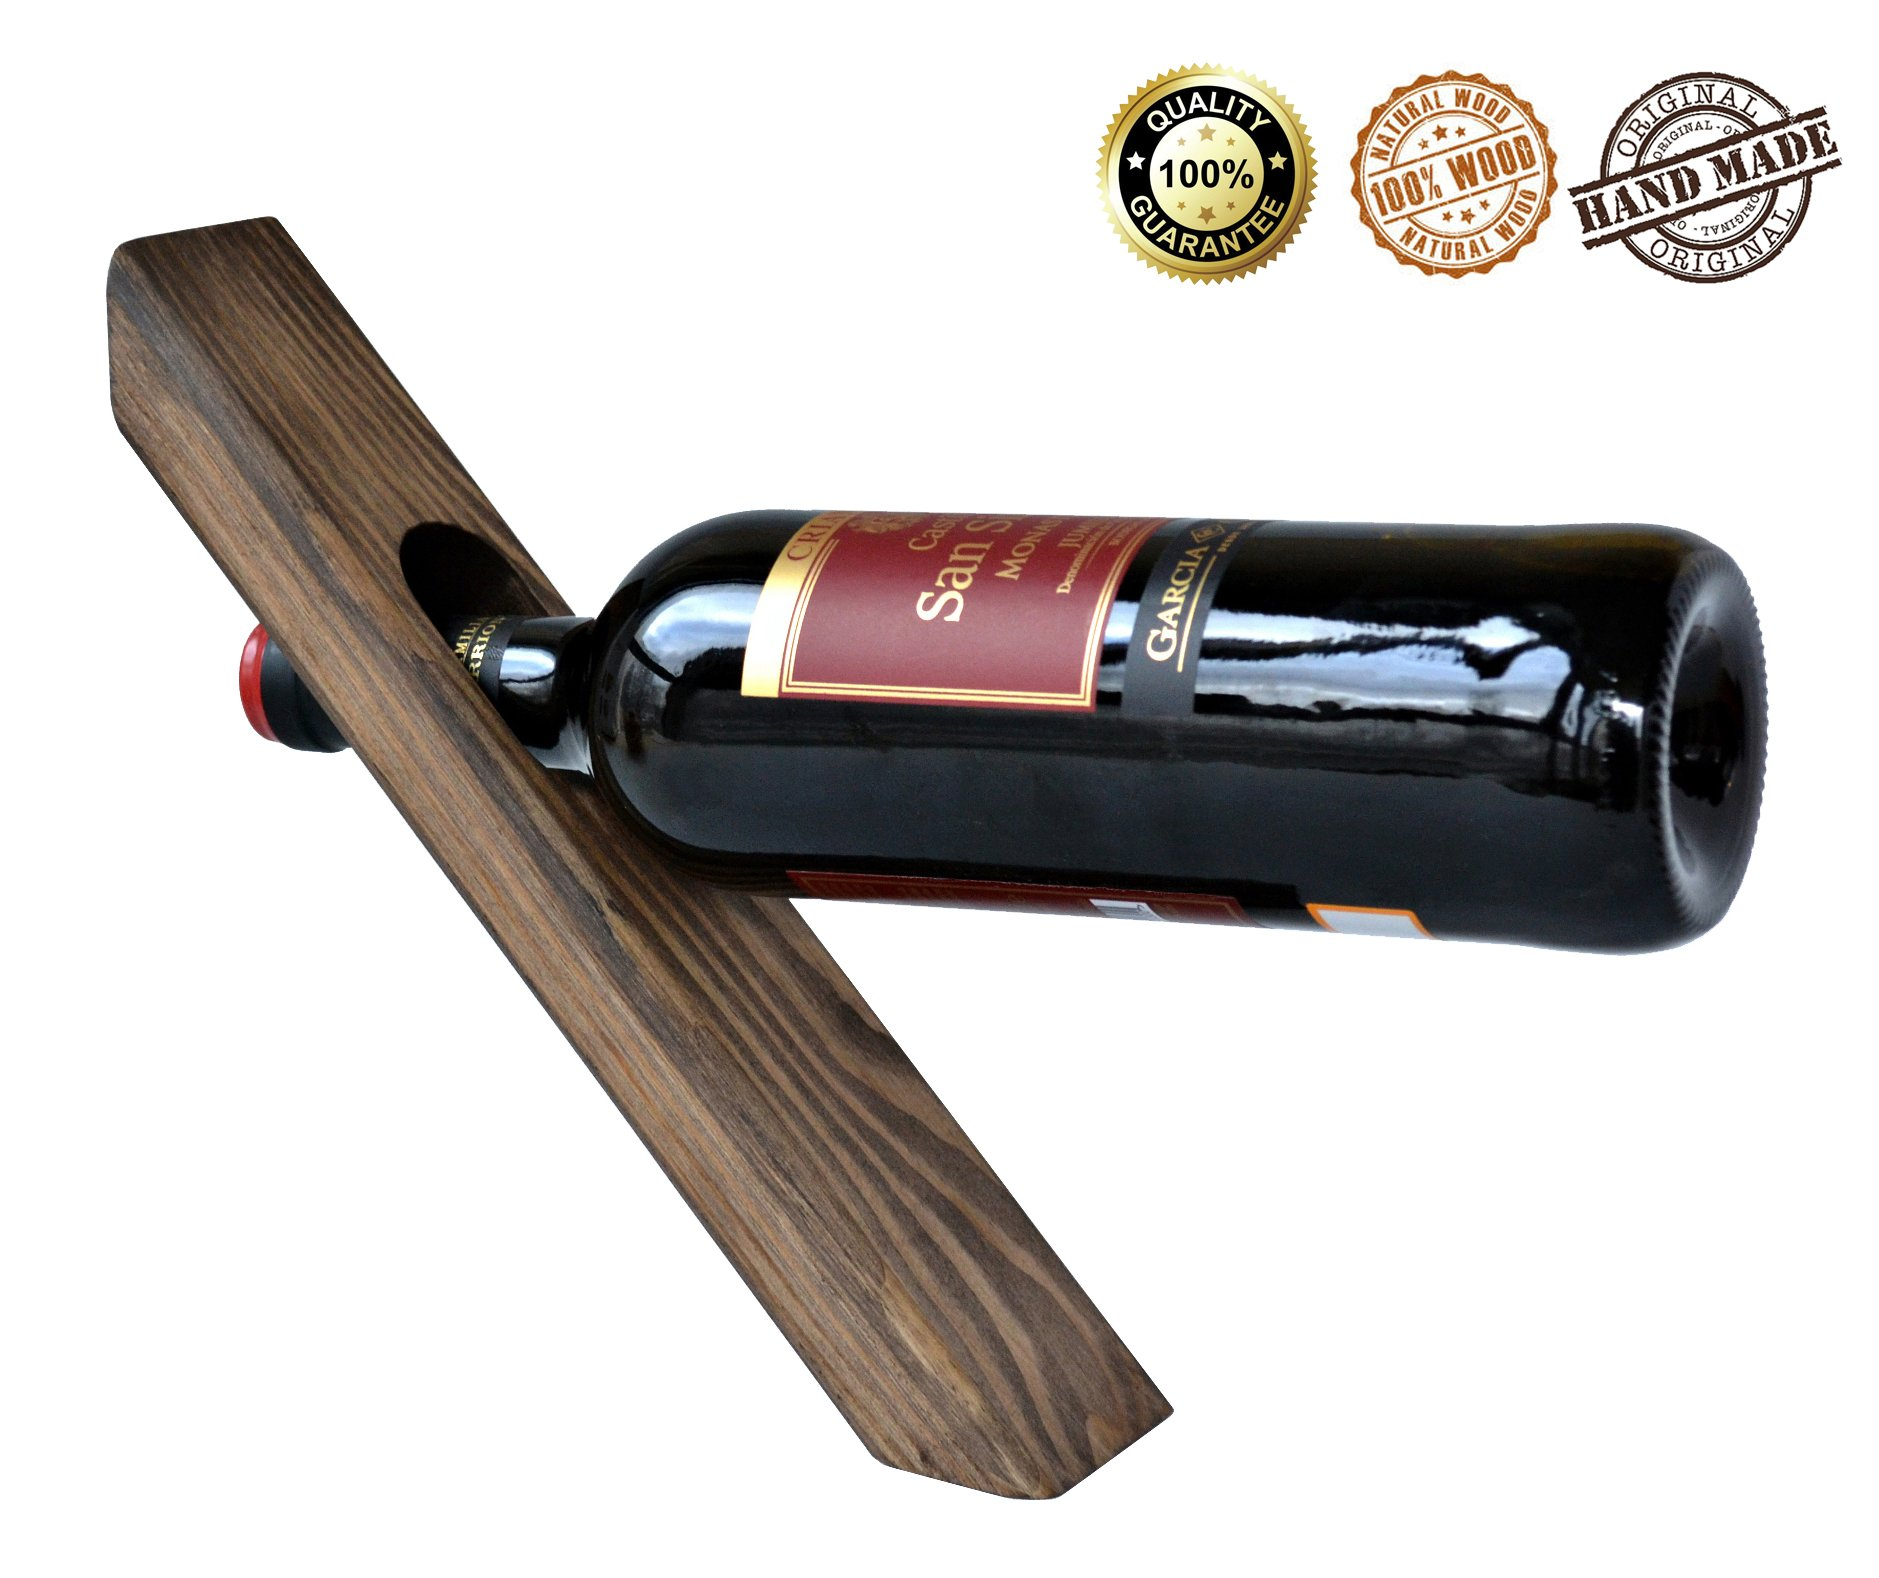 Wood Wine Balancing Holder Gravity Defying Bottle Pine Free Standing Rack Decorative Accessory